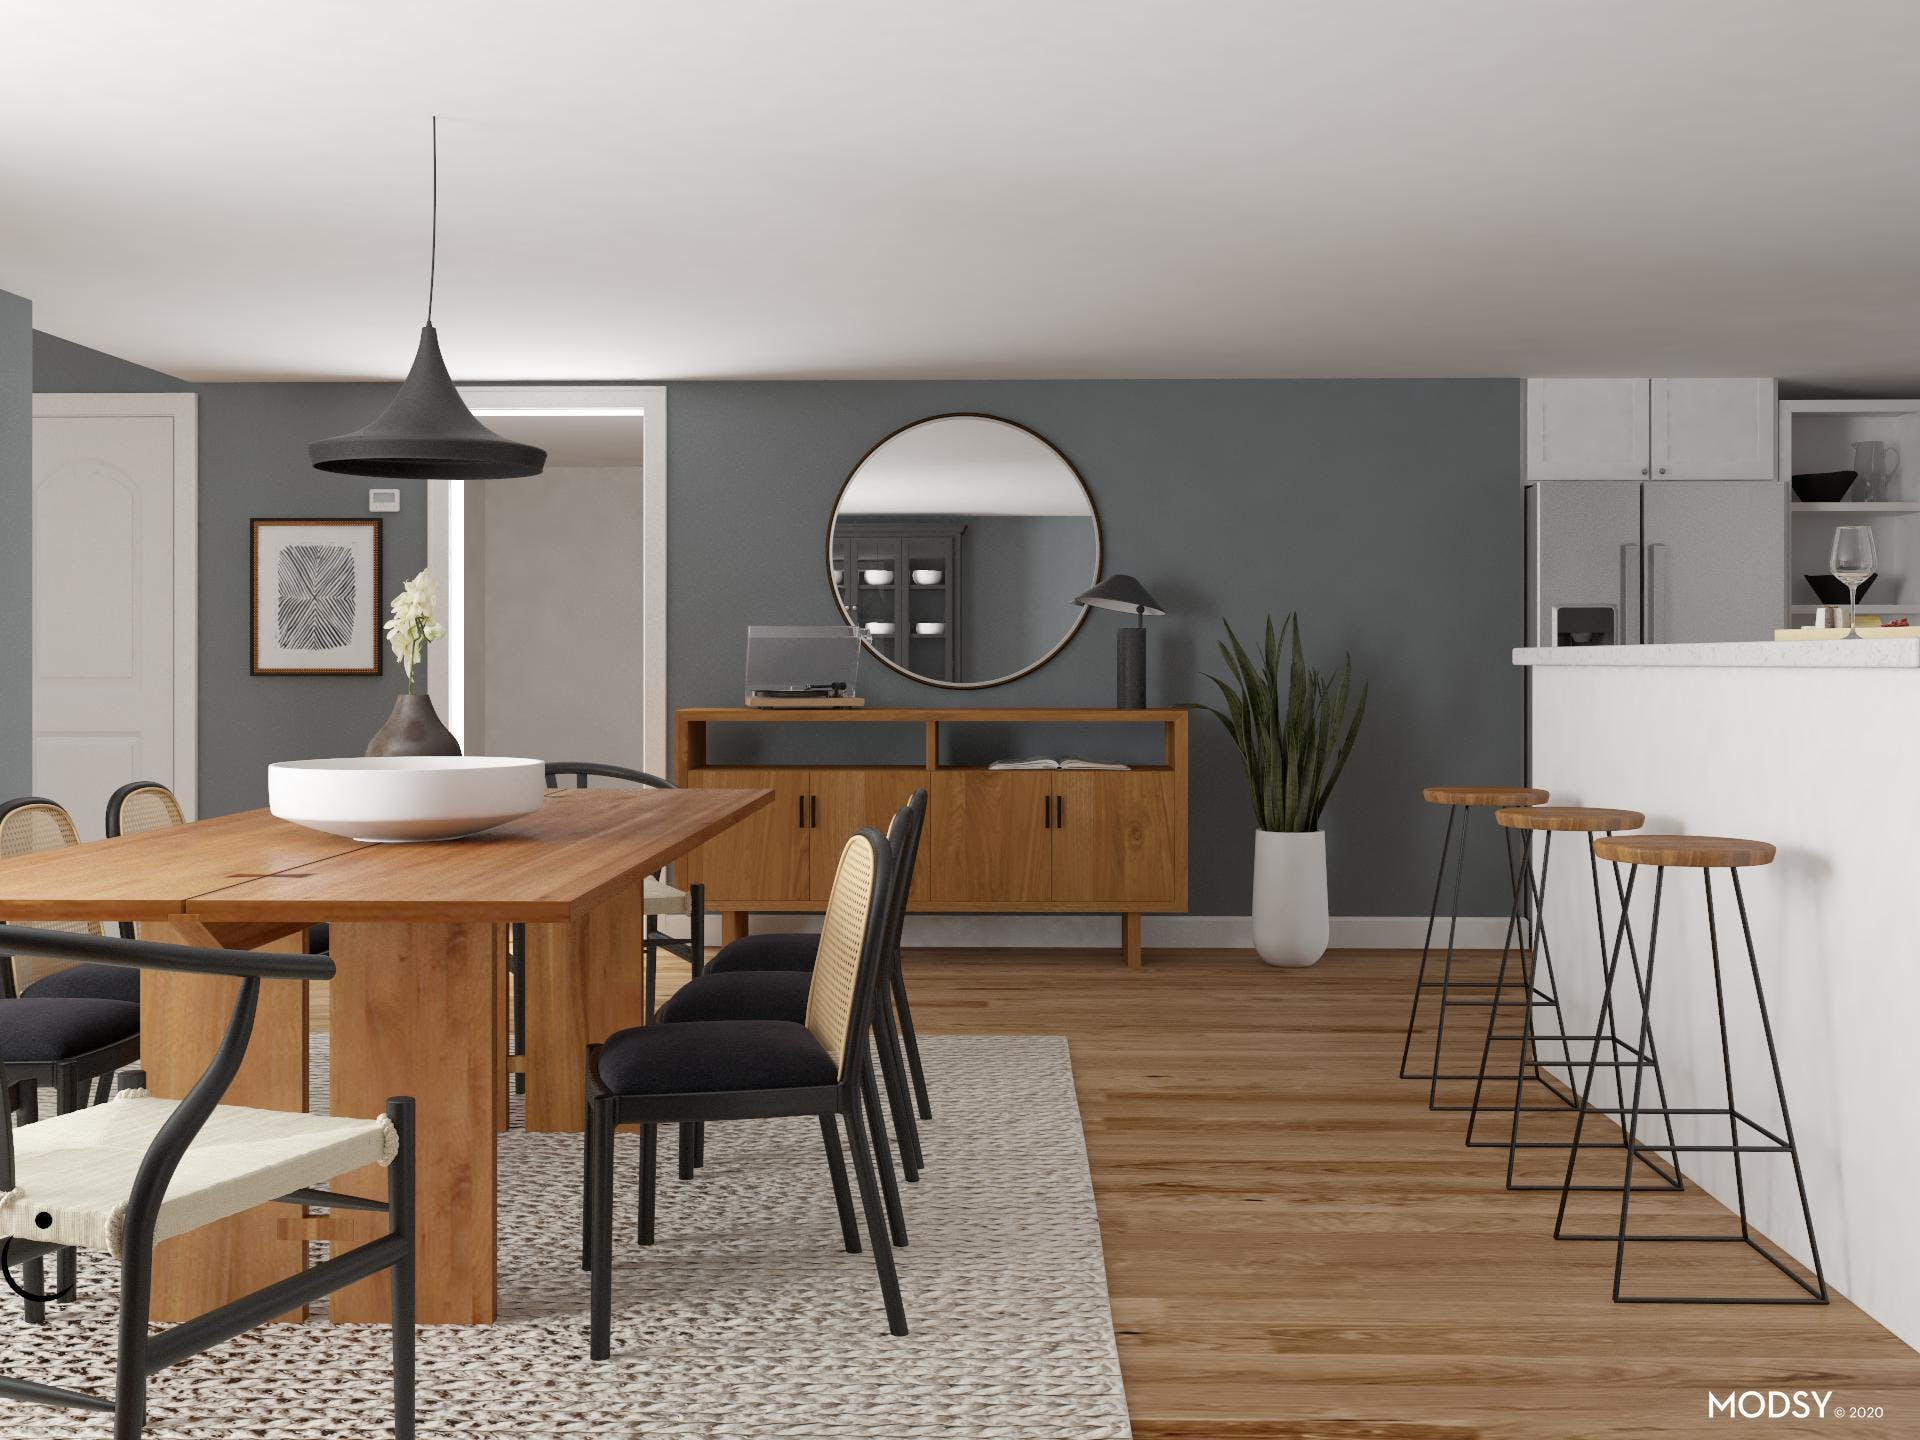 Minimalist Dining Room with Style